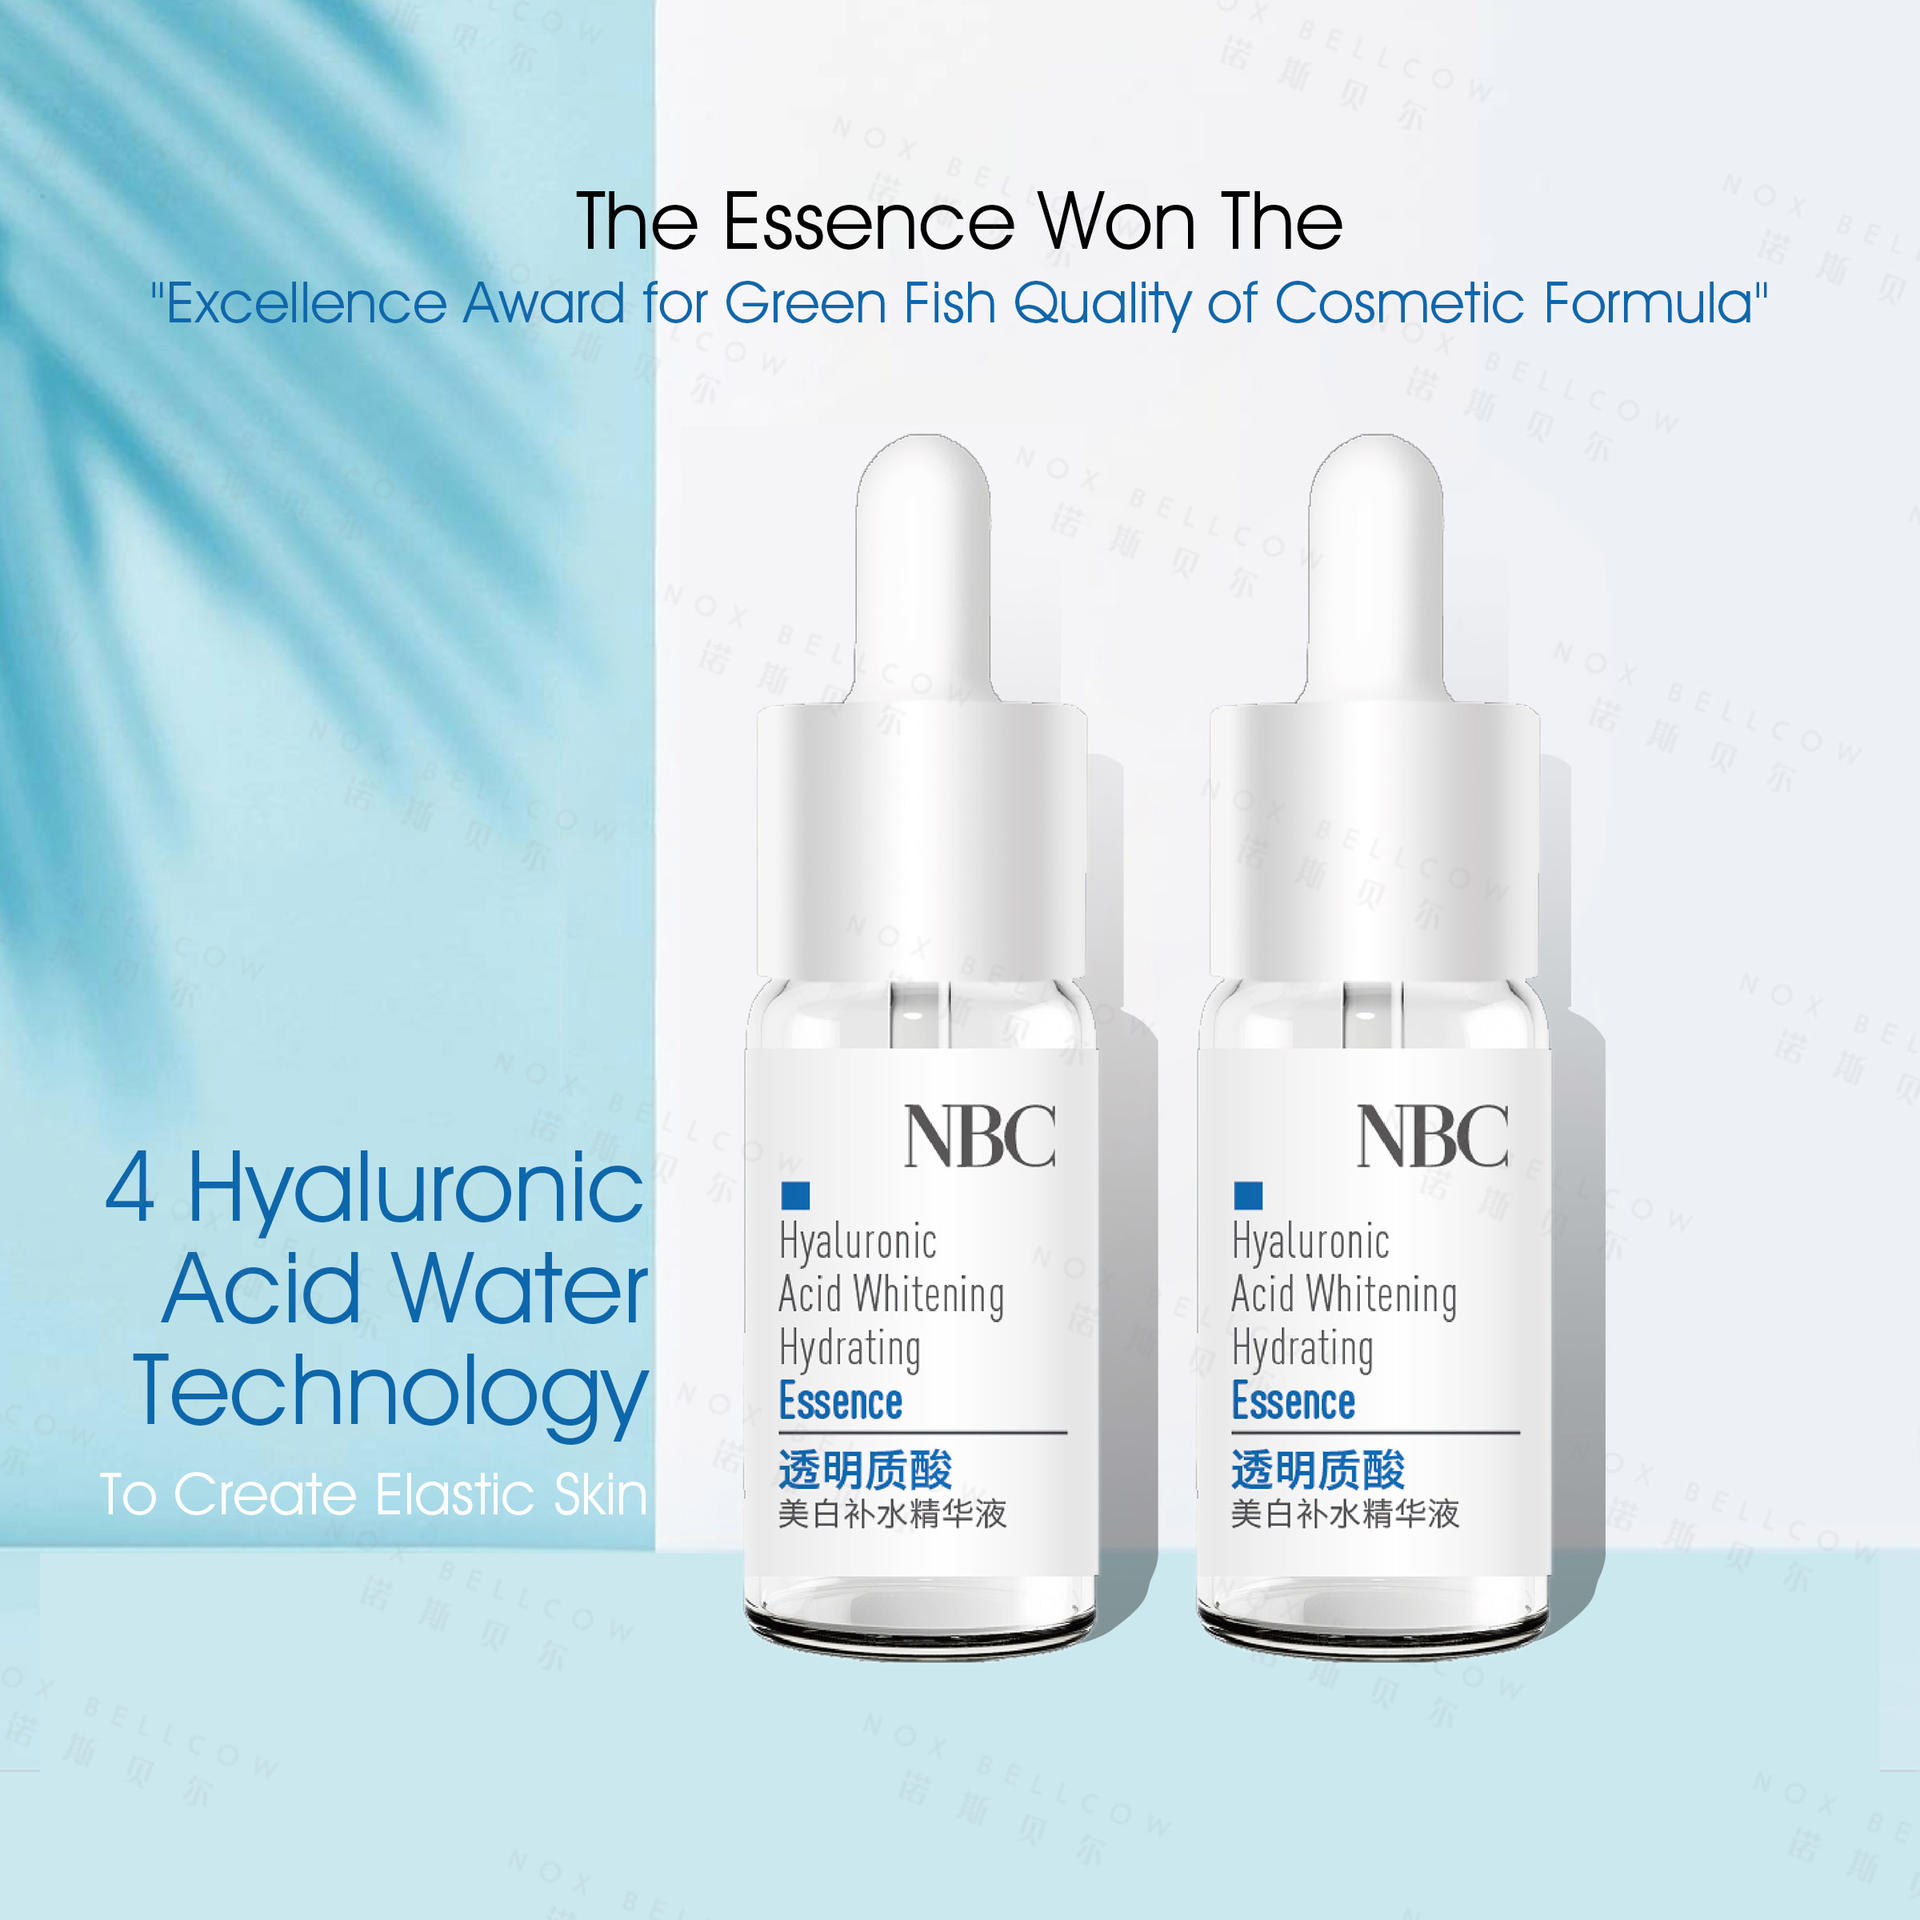 Hyaluronlc Acid Whitening Hydrating Essence